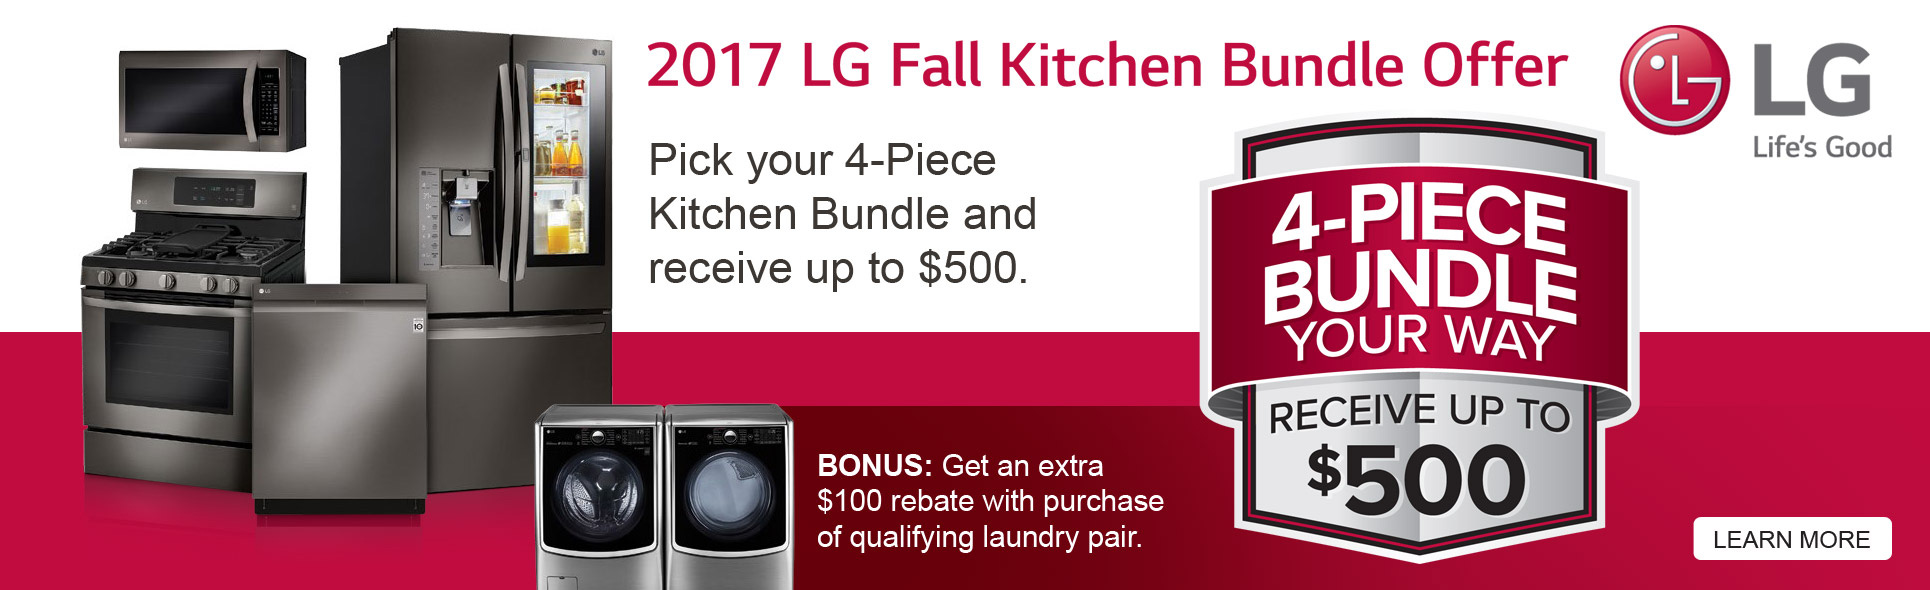 Save up to $500 with qualified LG Appliance purchase